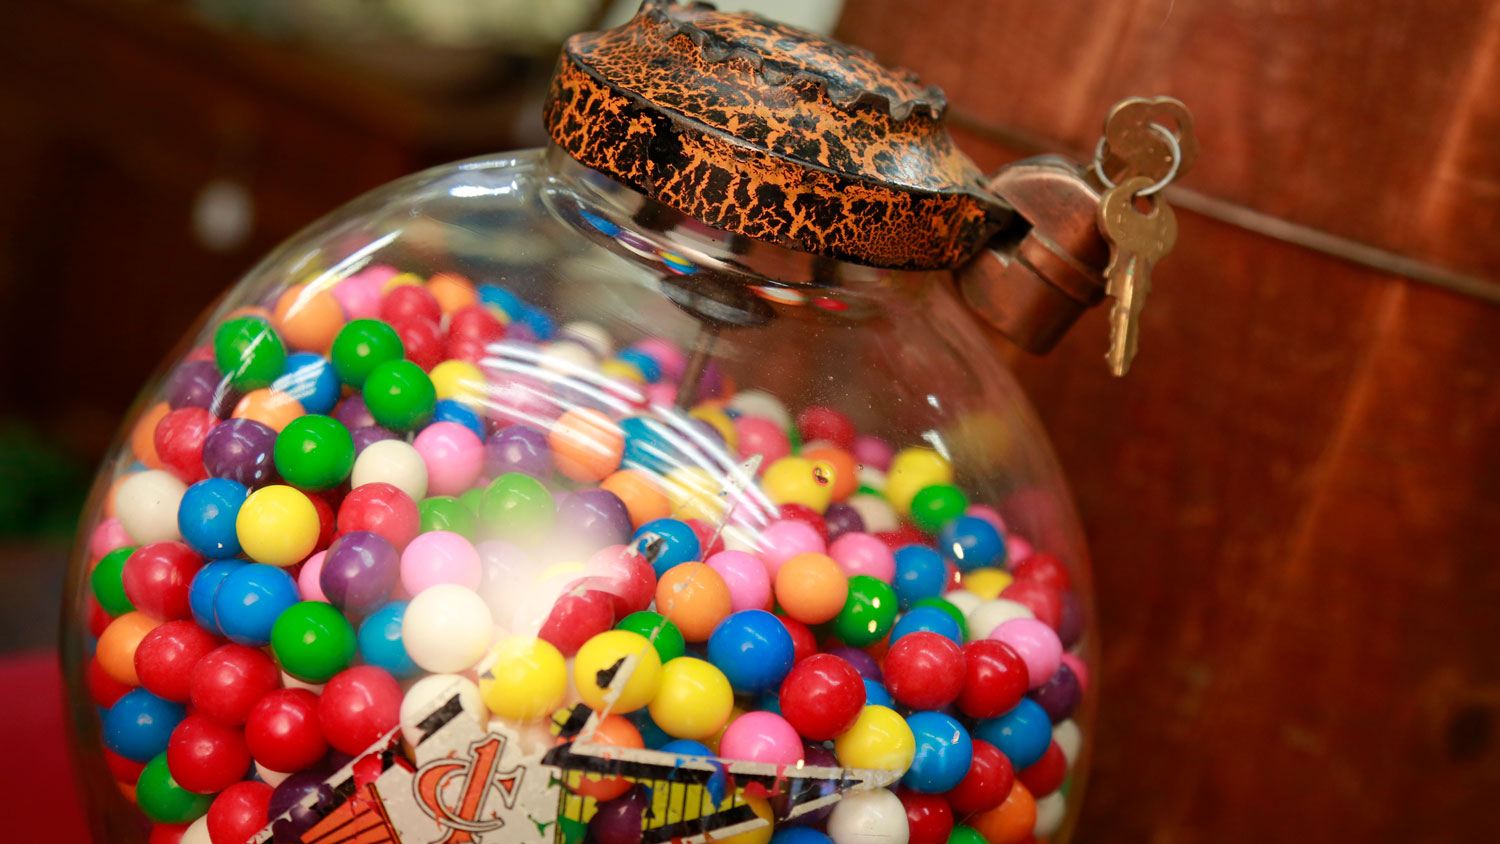 The unique castle top and crackle finish of this gumball dispenser is shown.